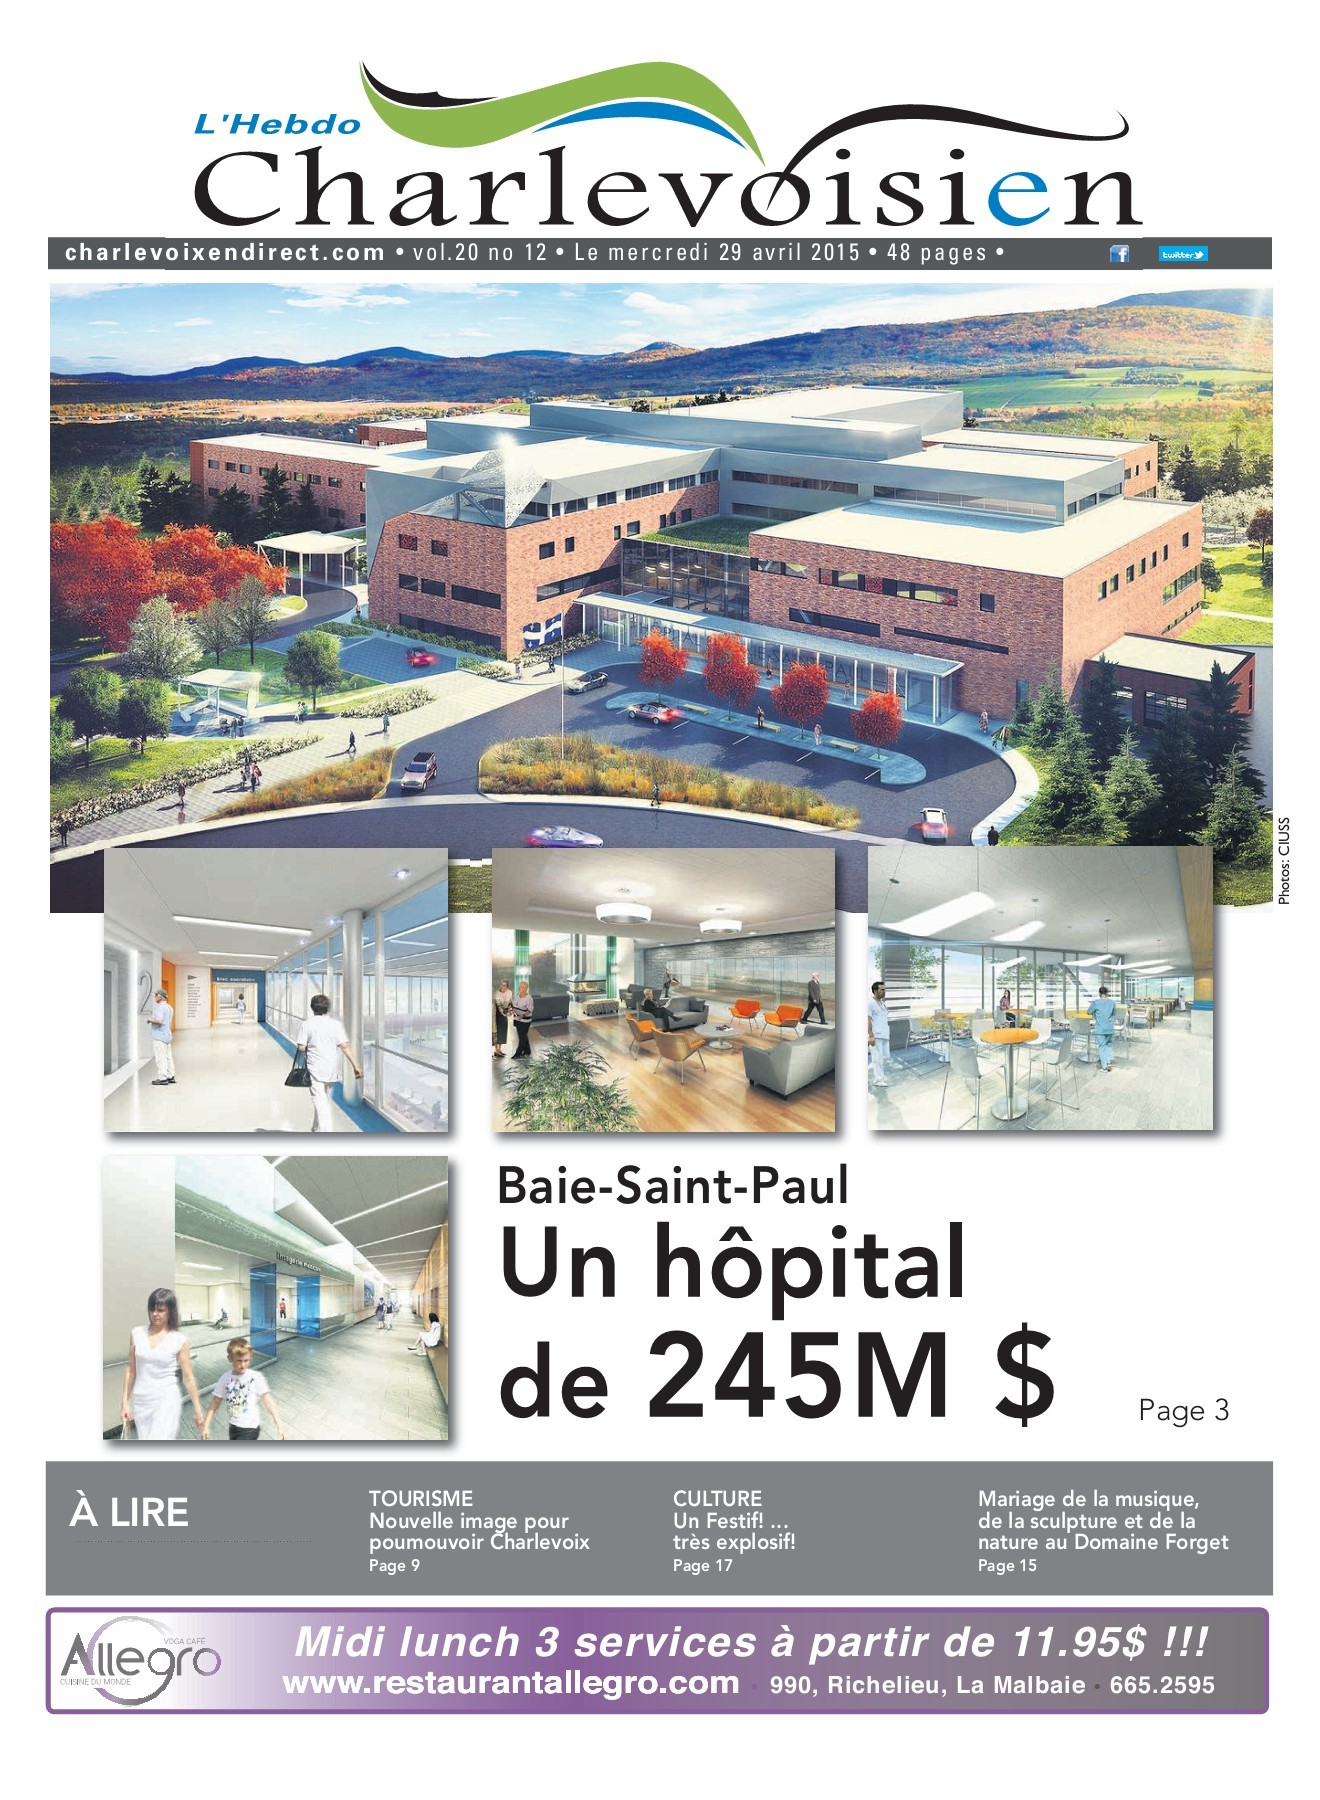 Meuble Leon Sherbrooke Circulaire Le Charlevoisien 29 Avril 2015 Pages 1 48 Text Version Fliphtml5